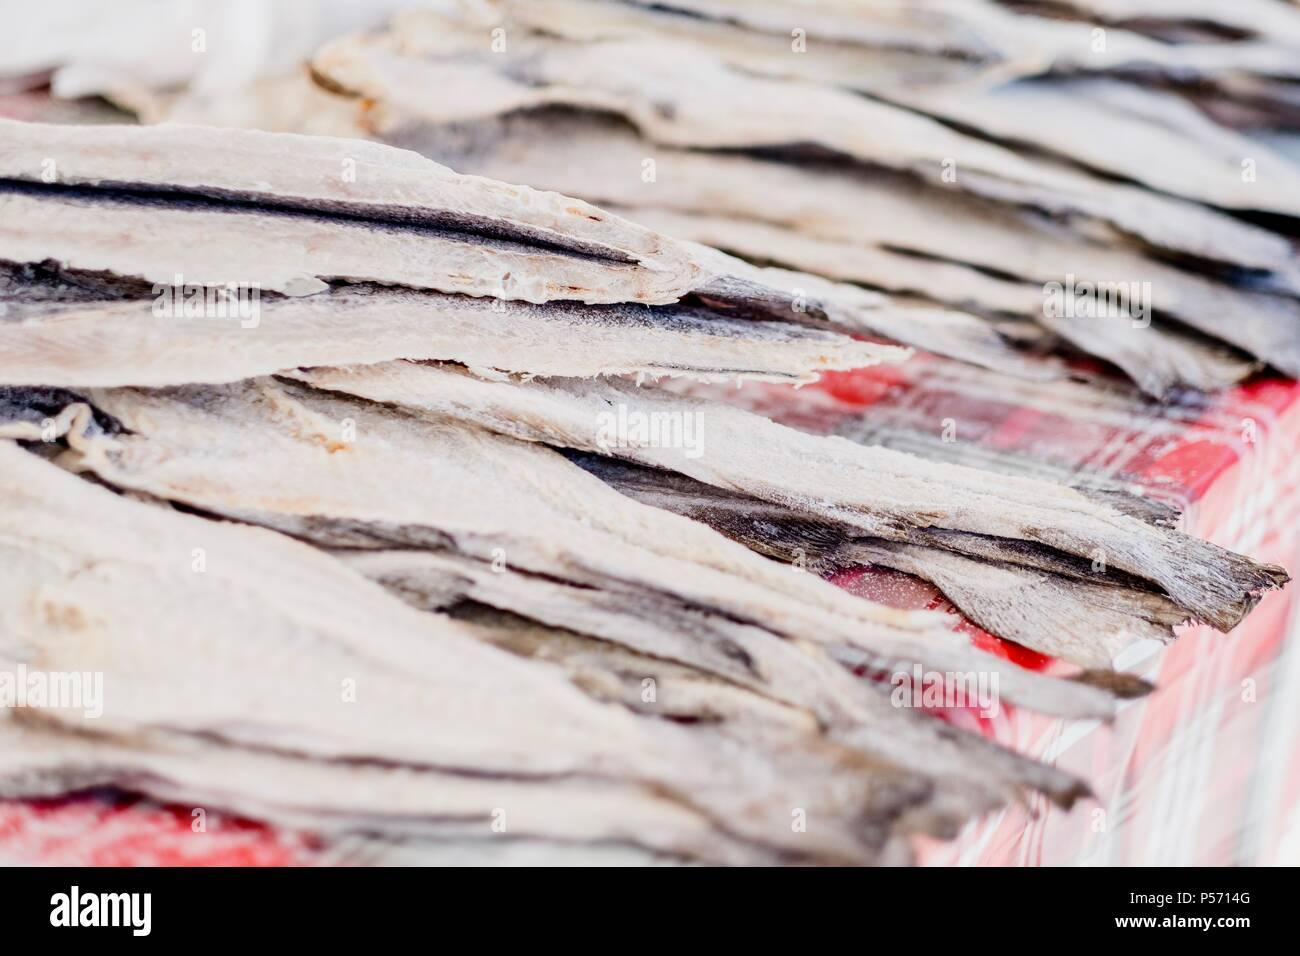 Dried, salted codfish is a traditional portuguese fish sold on the open air market - Stock Image